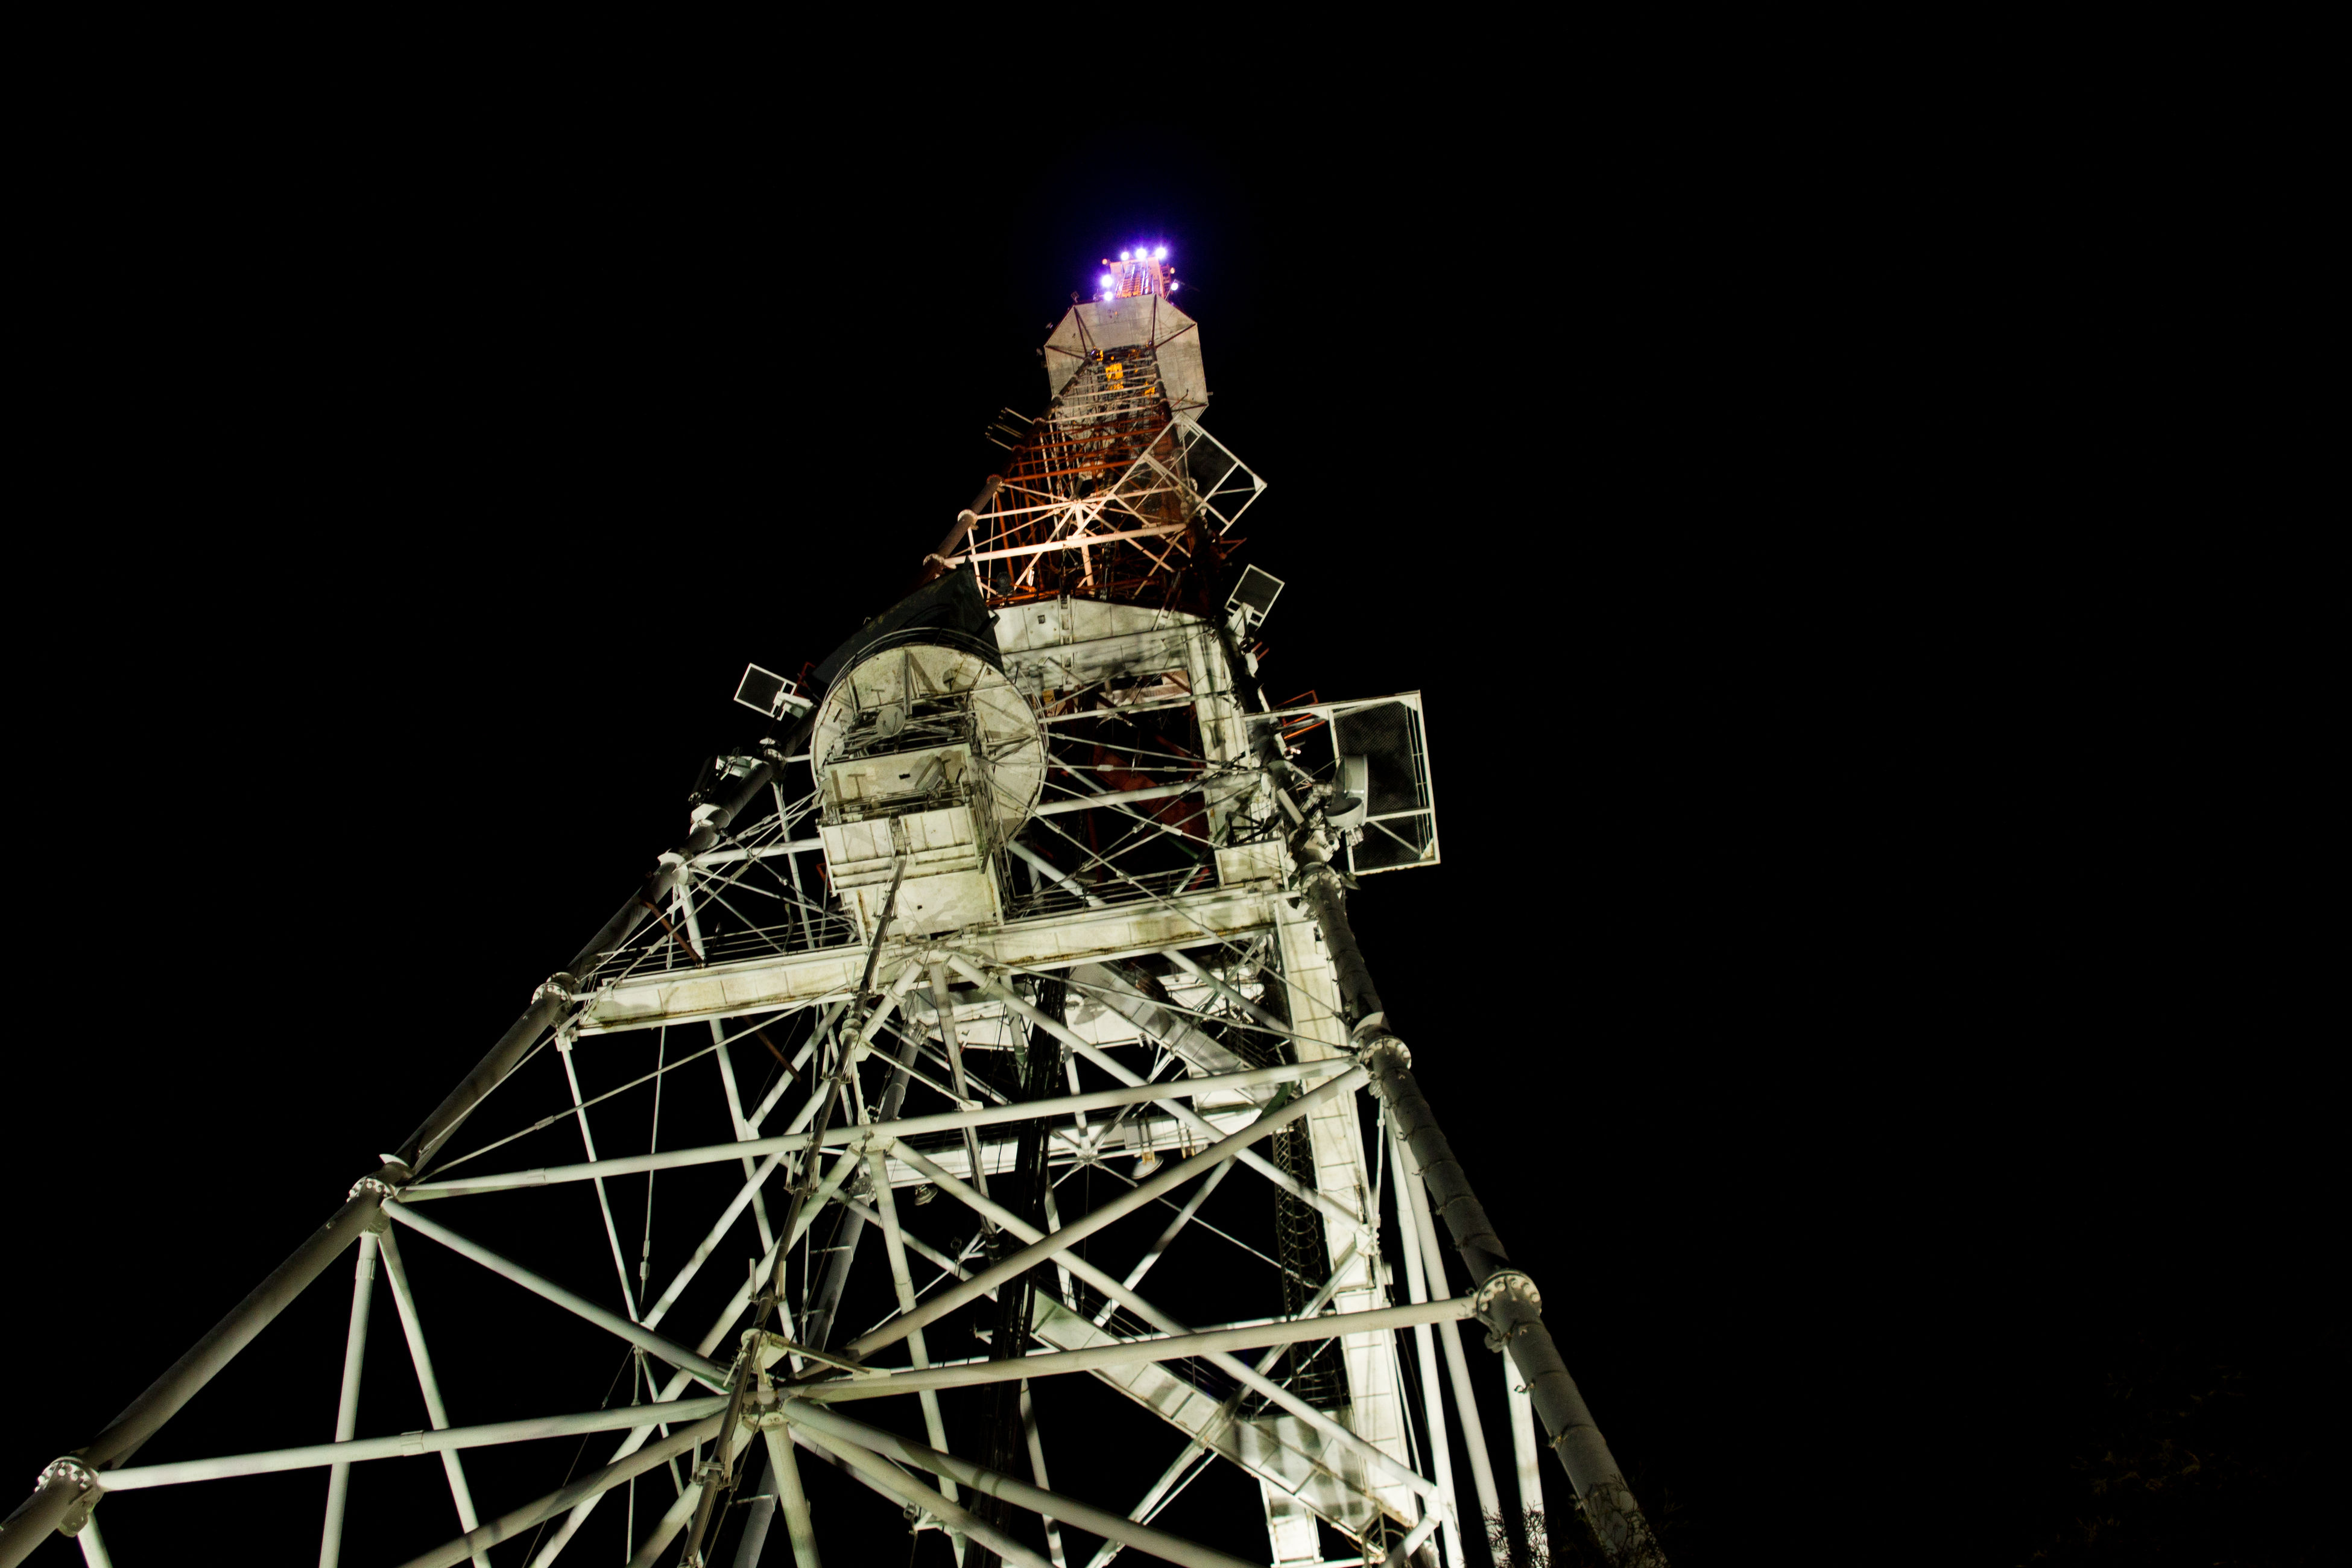 night, architecture, built structure, illuminated, low angle view, no people, black background, outdoors, clear sky, building exterior, technology, sky, drilling rig